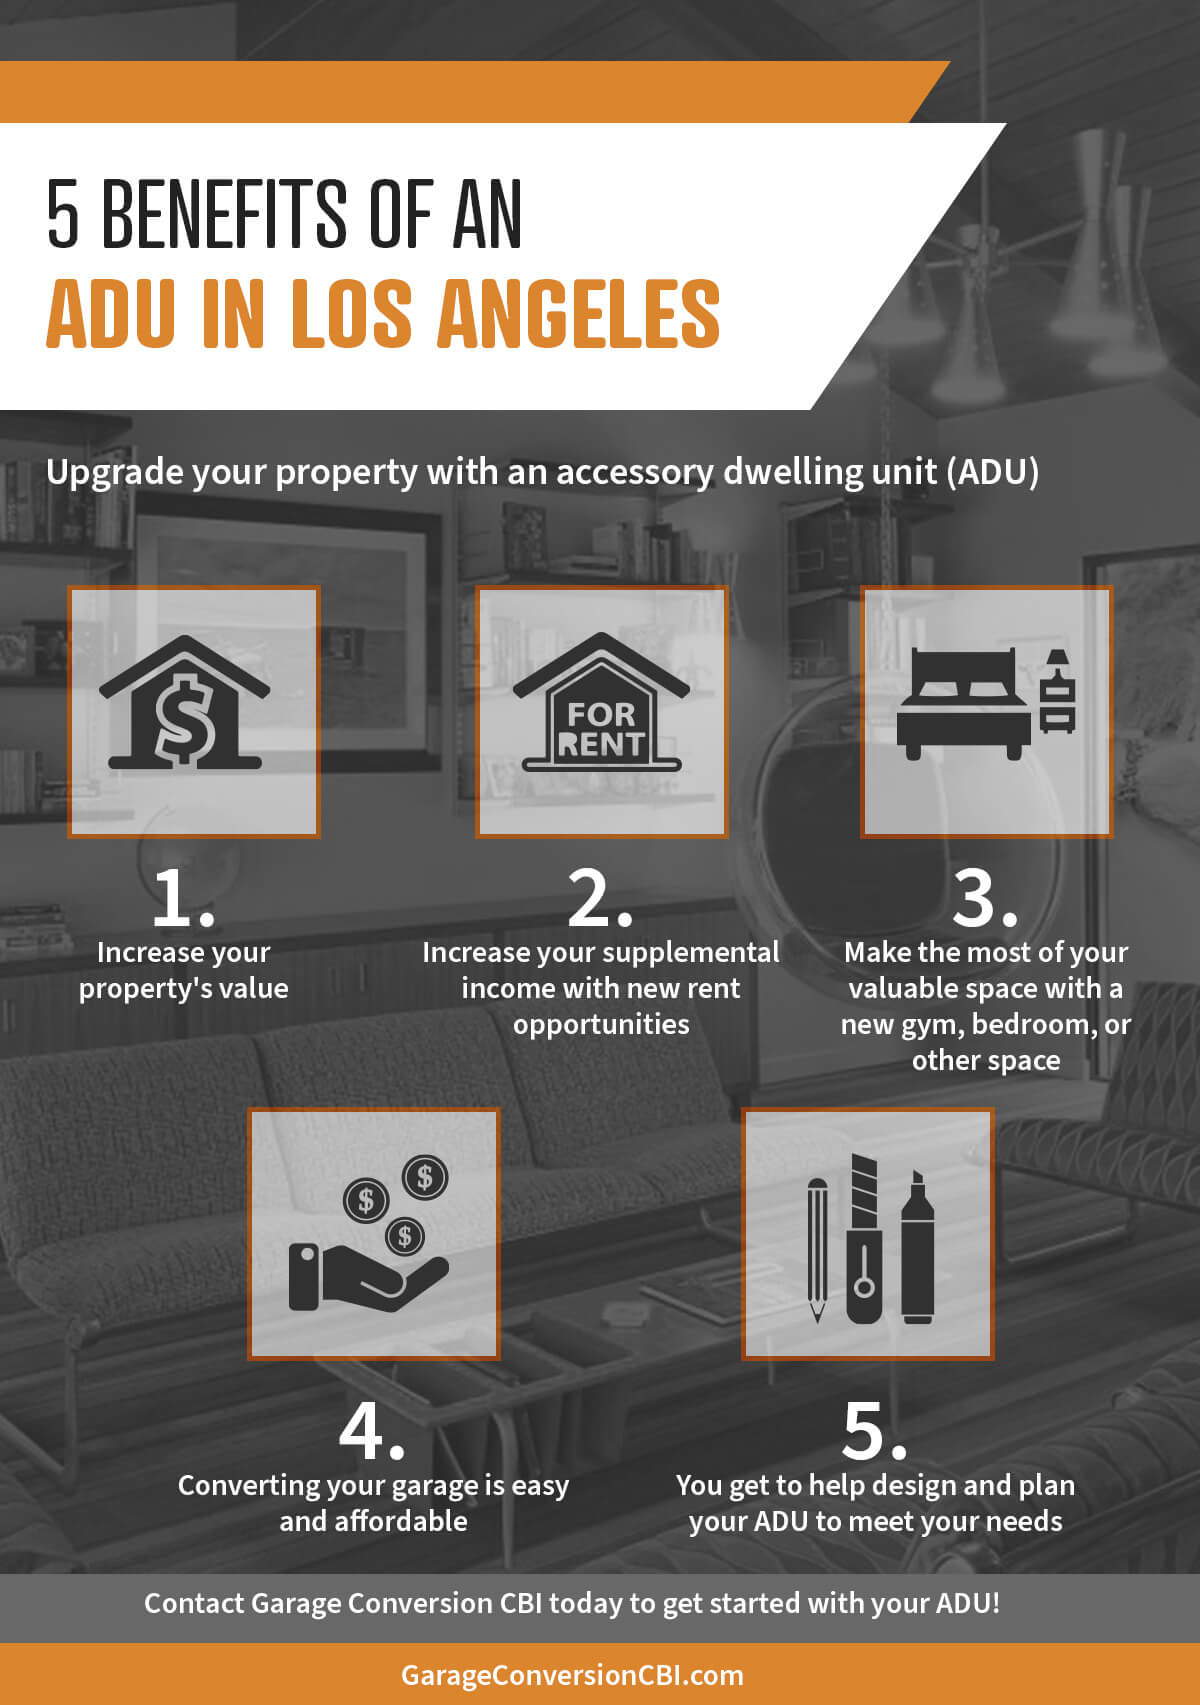 5 Benefits Of An ADU In Los Angeles